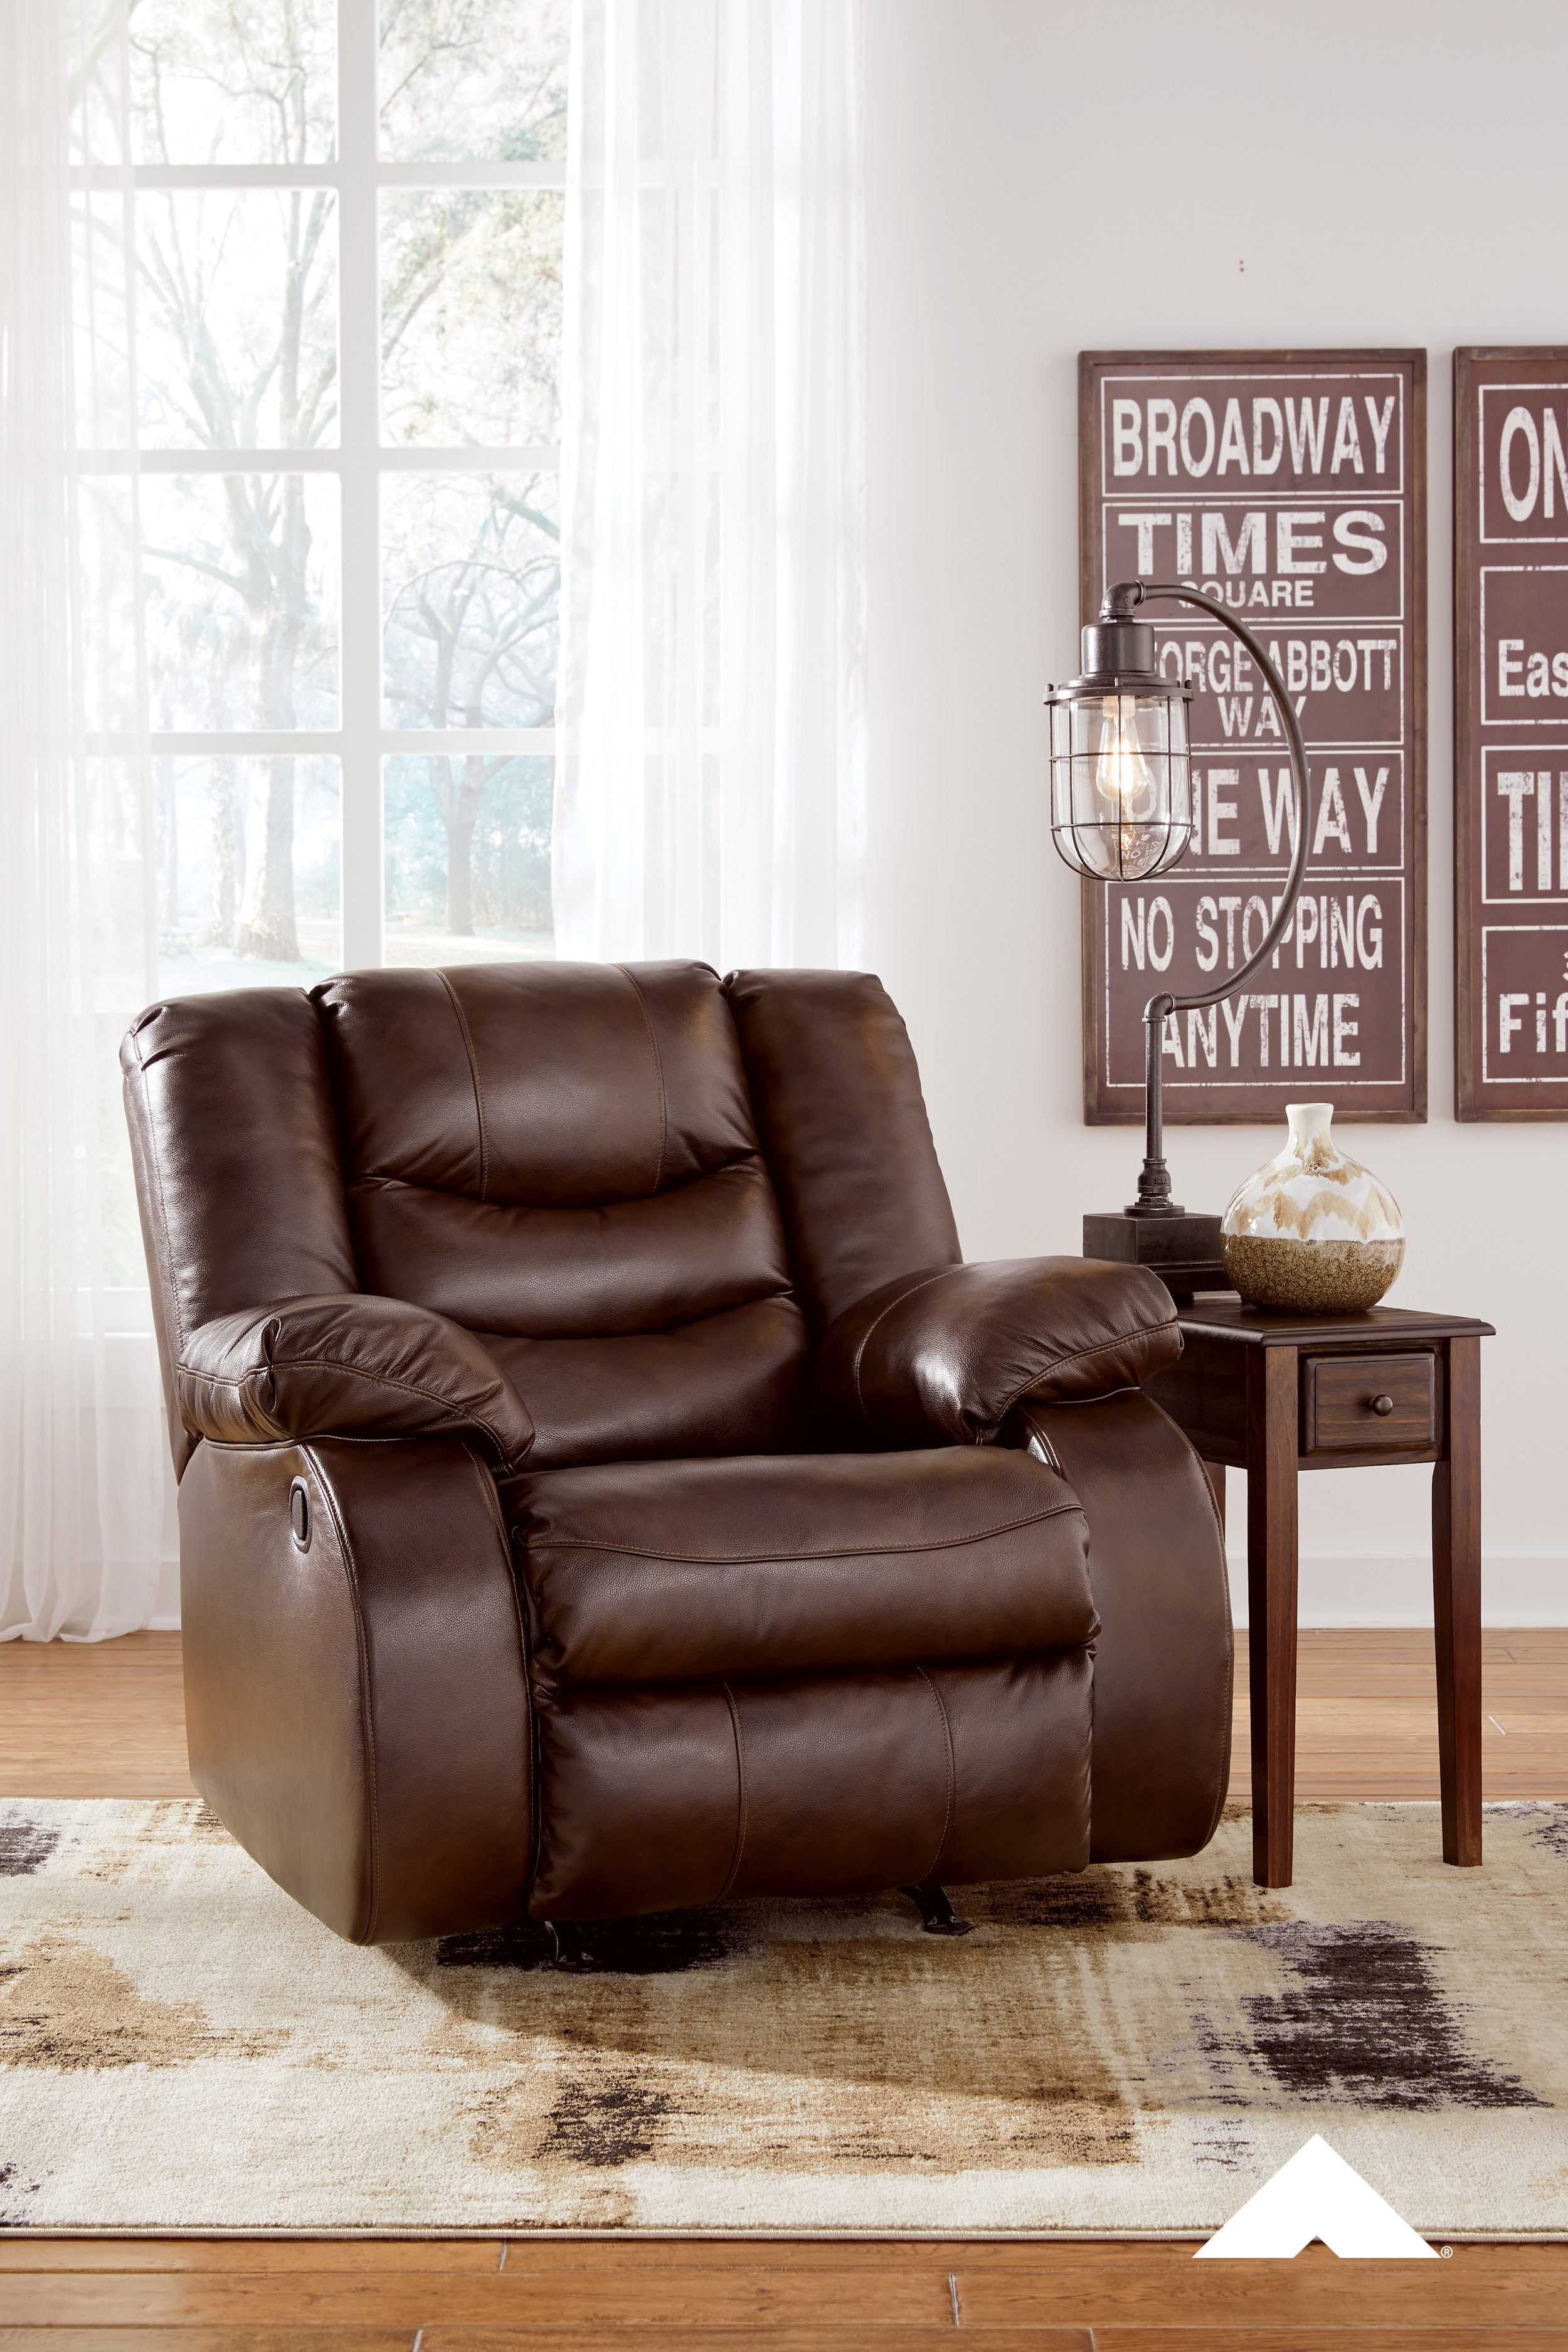 Neverfield Chocolate Rocker Recliner By Ashley Furniture This Rocker Recliner Has A Timeless Appeal That The Whole Rocker Recliners Leather Recliner Recliner